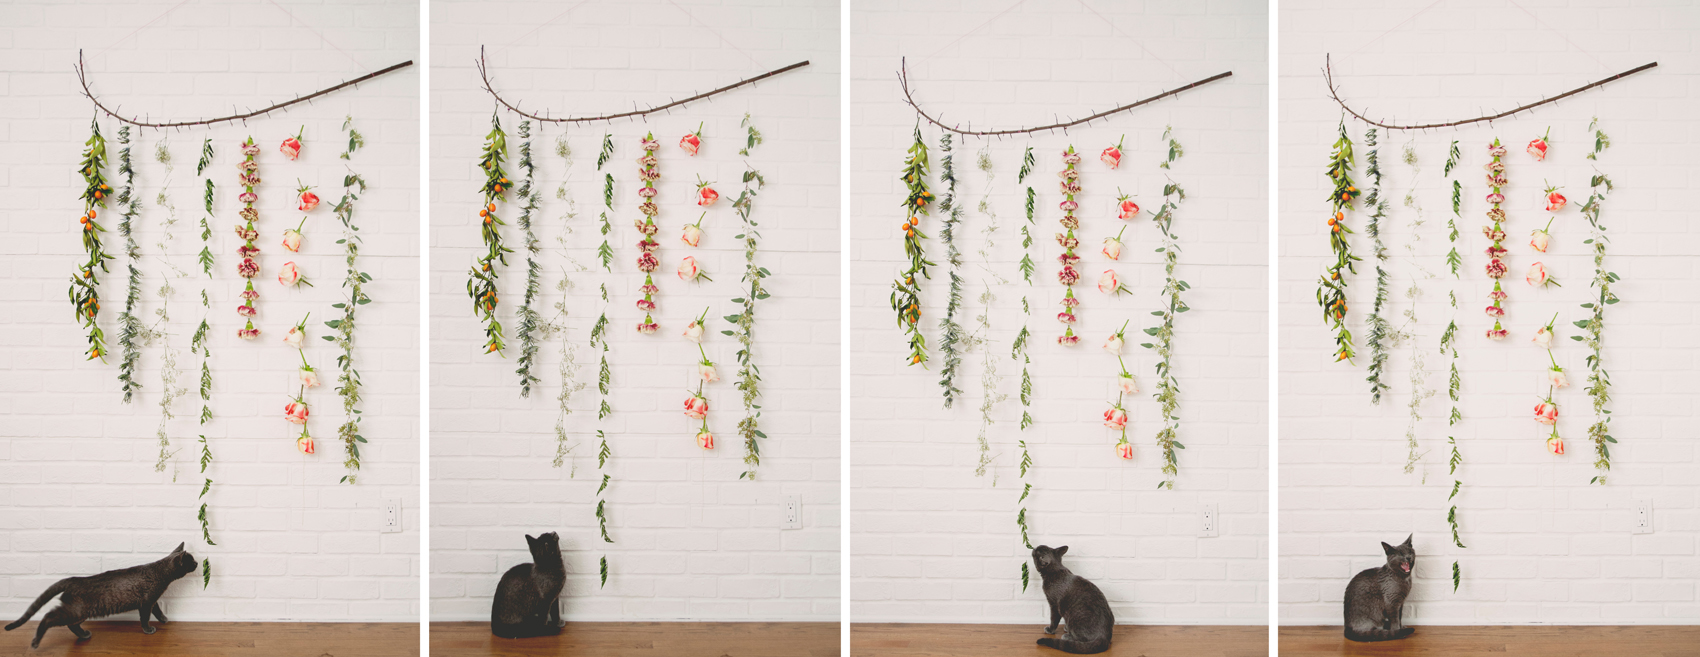 Kitchen wall hanging ideas - Diy Flower Wall Hanging The Kitchy Kitchen